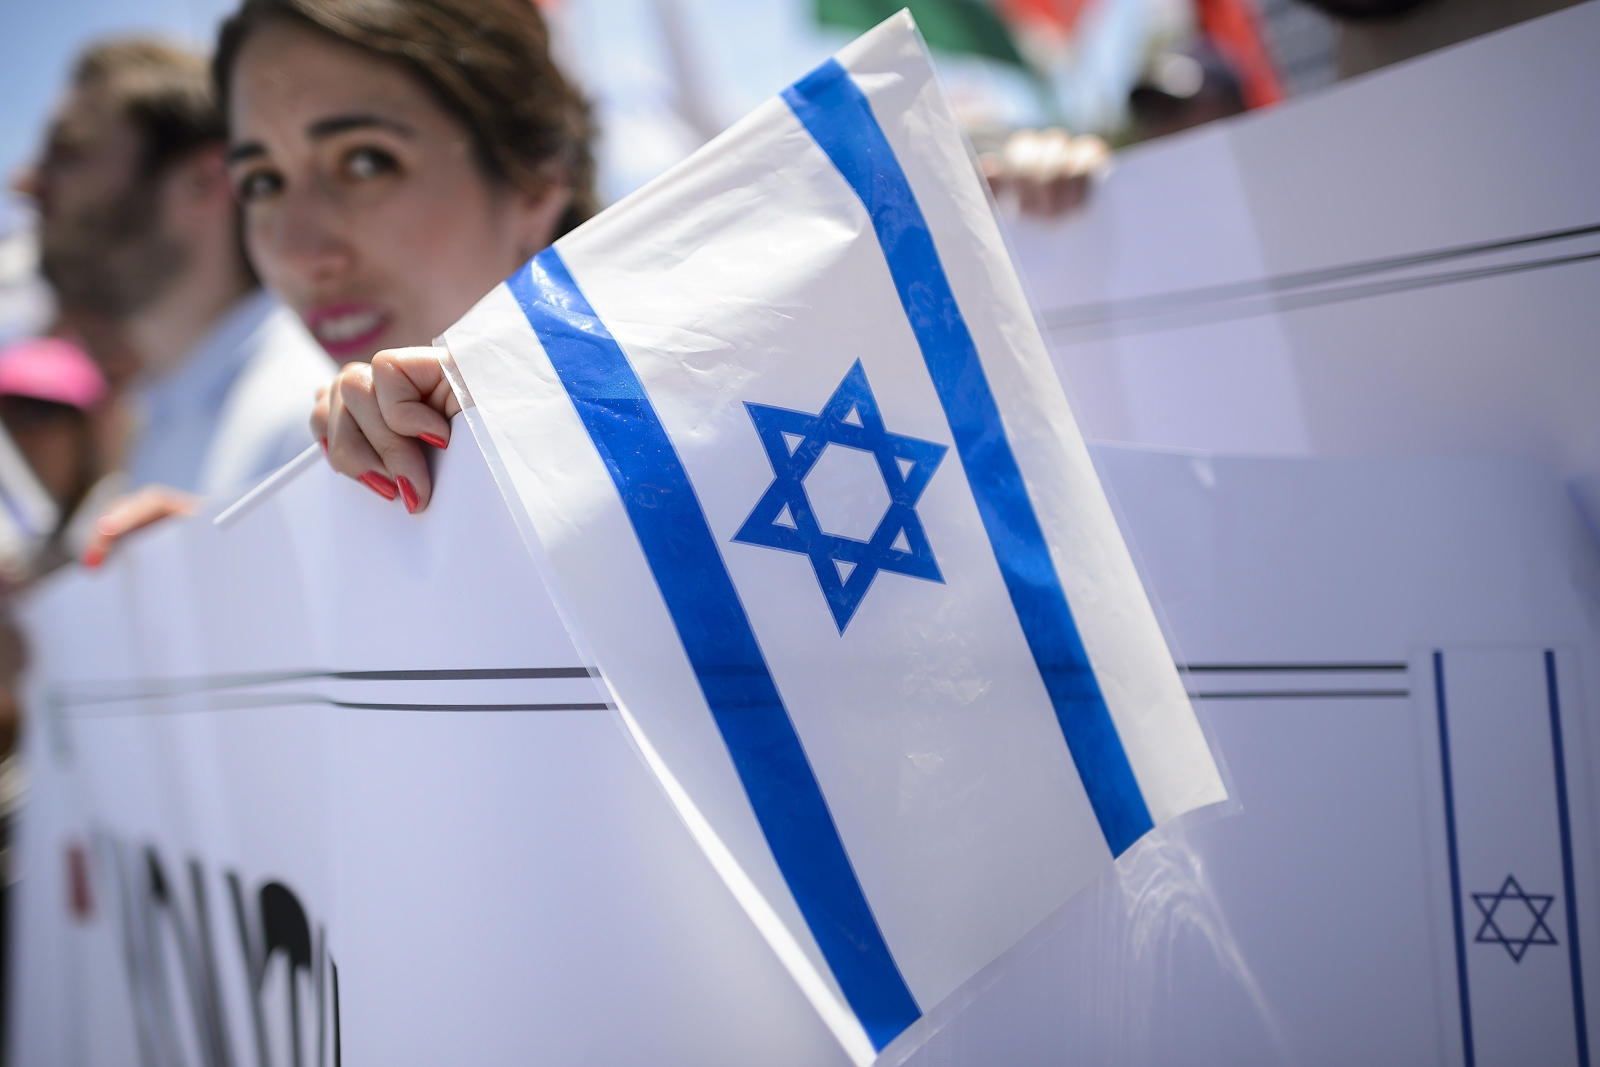 Pro-Israel protesters outside the Human Rights Council